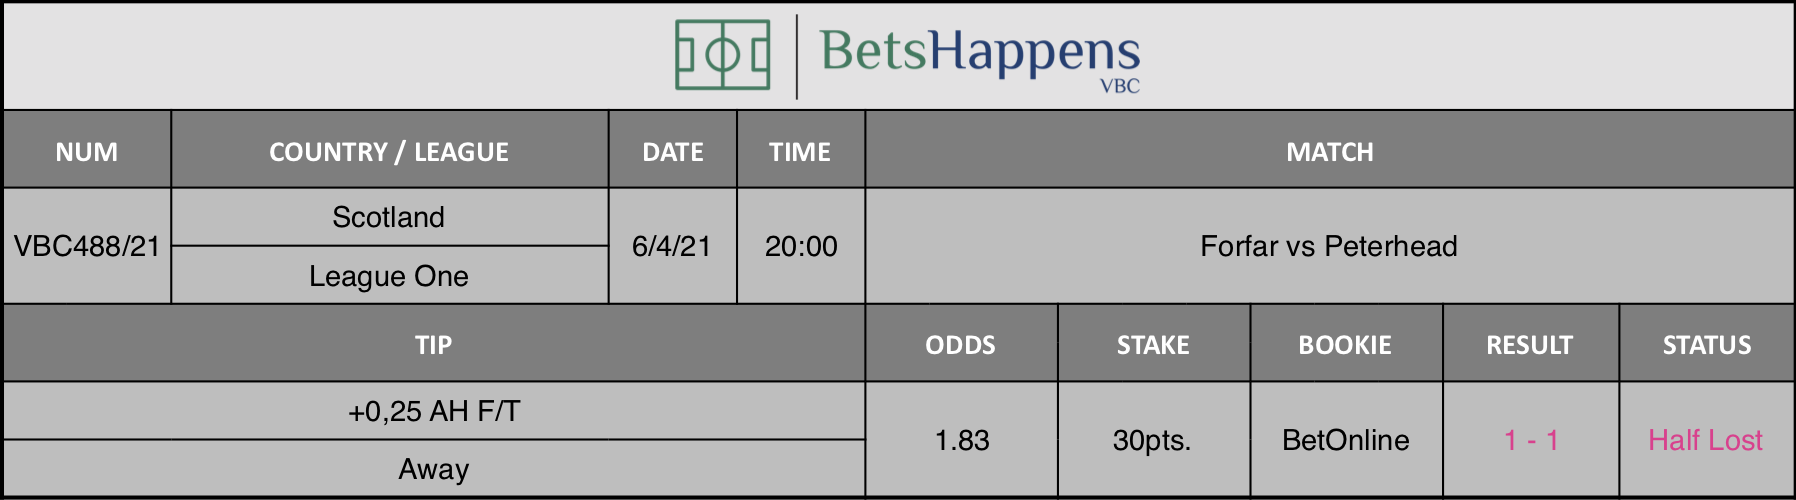 Results of our tip for the Forfar vs Peterhead match where +0,25 AH F/T  Away is recommended.